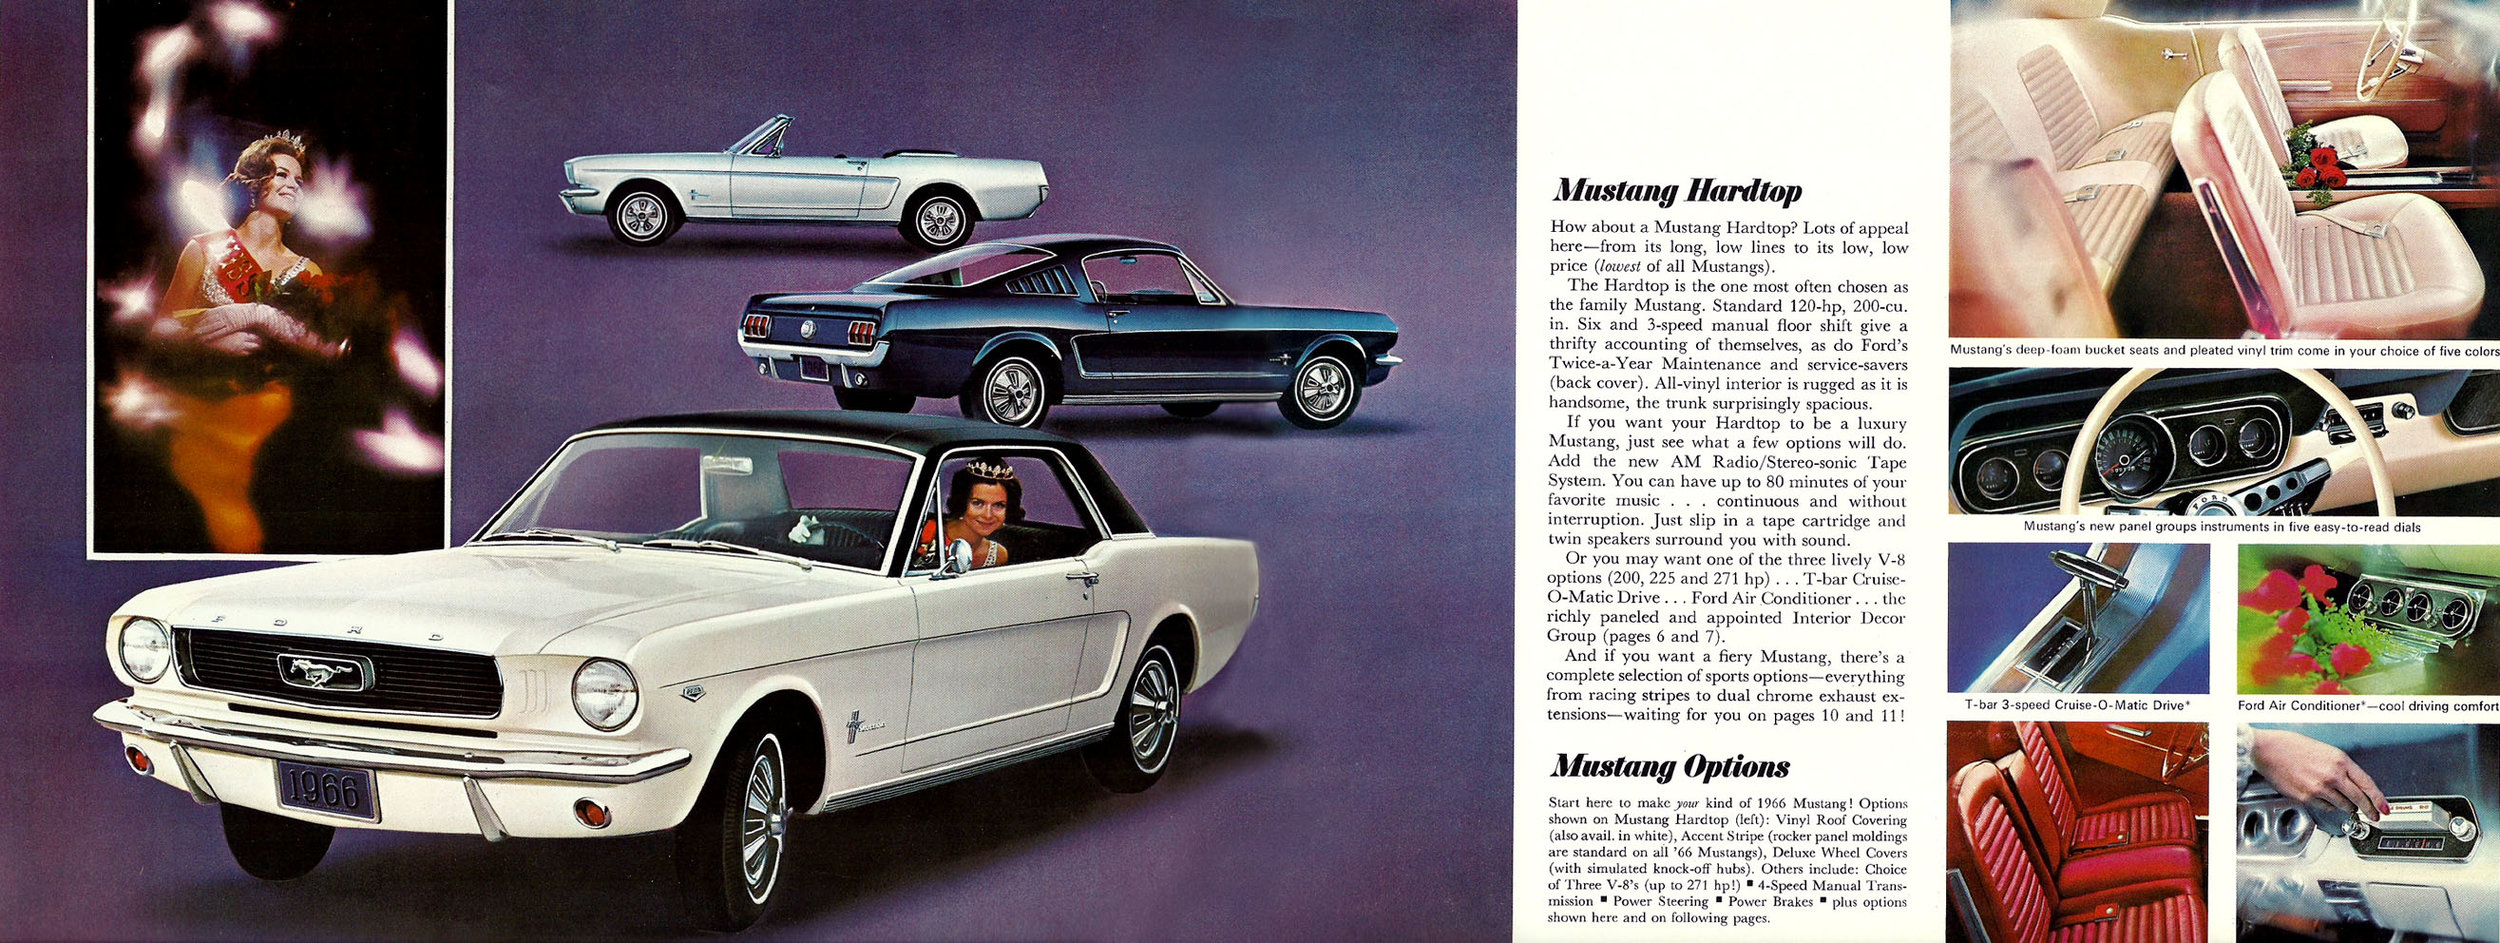 1966 Mustang hardtop, soft top and fastback options